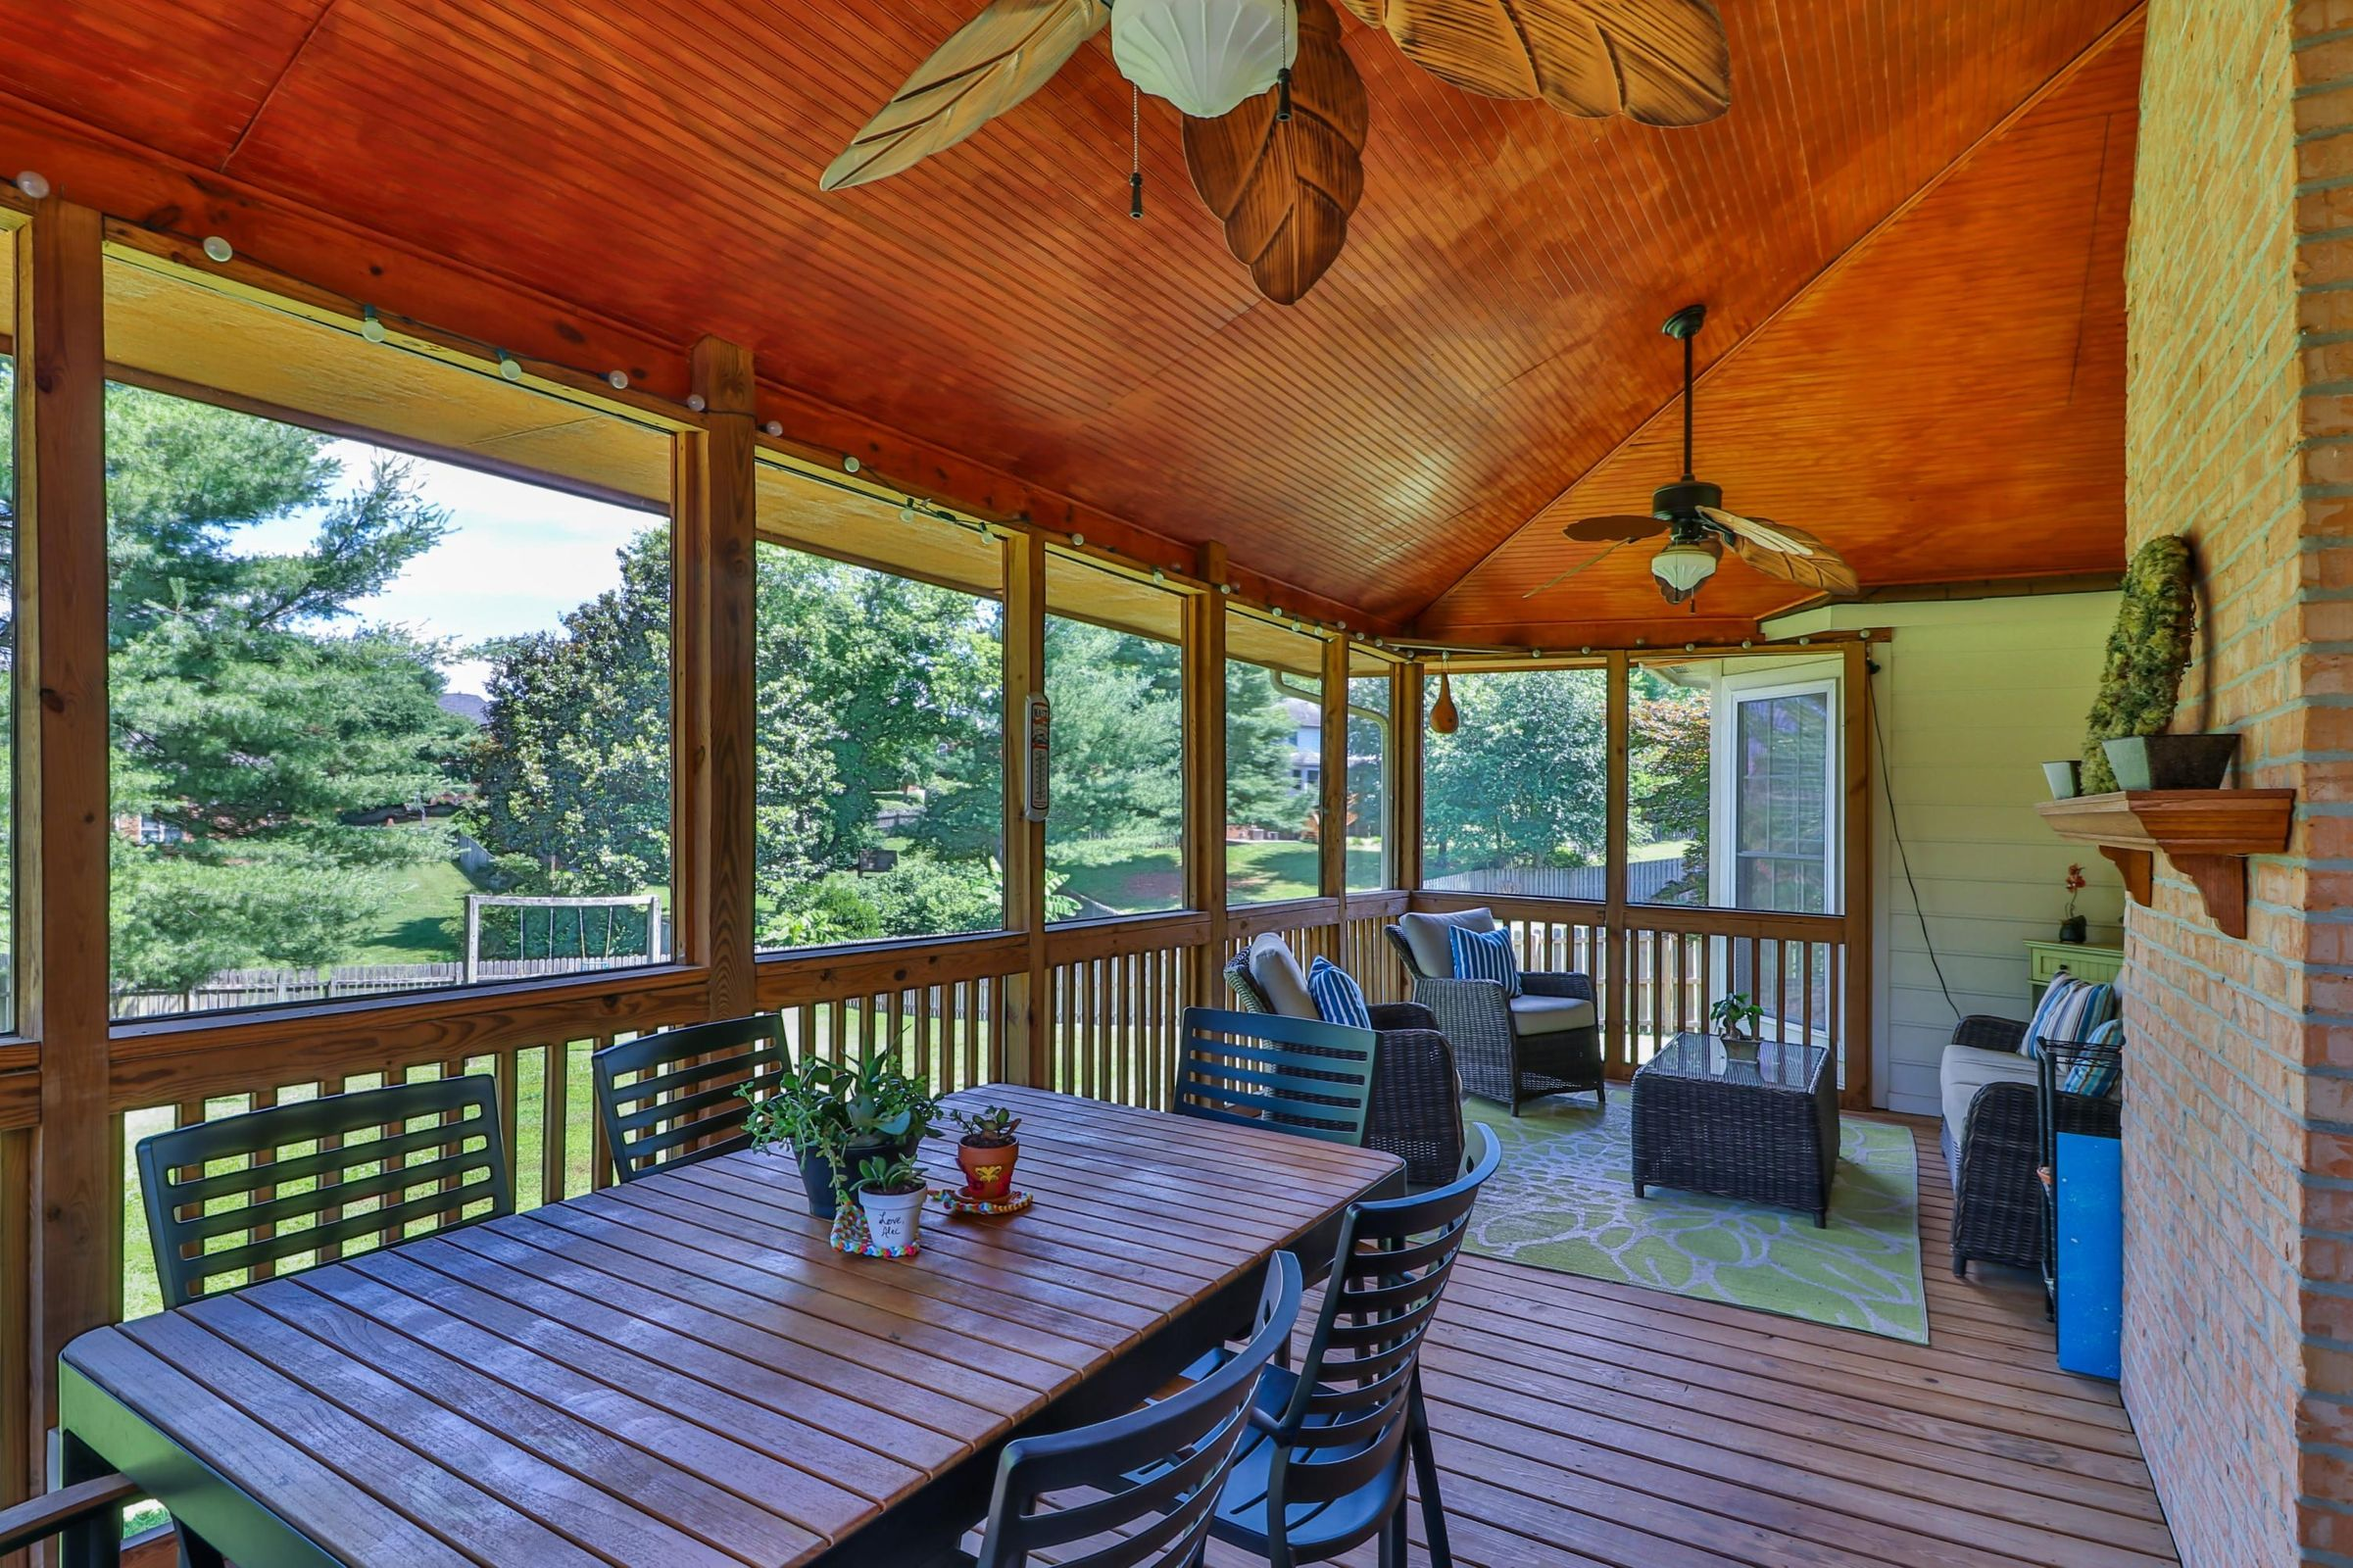 Screened Porch - AMAZING Space!